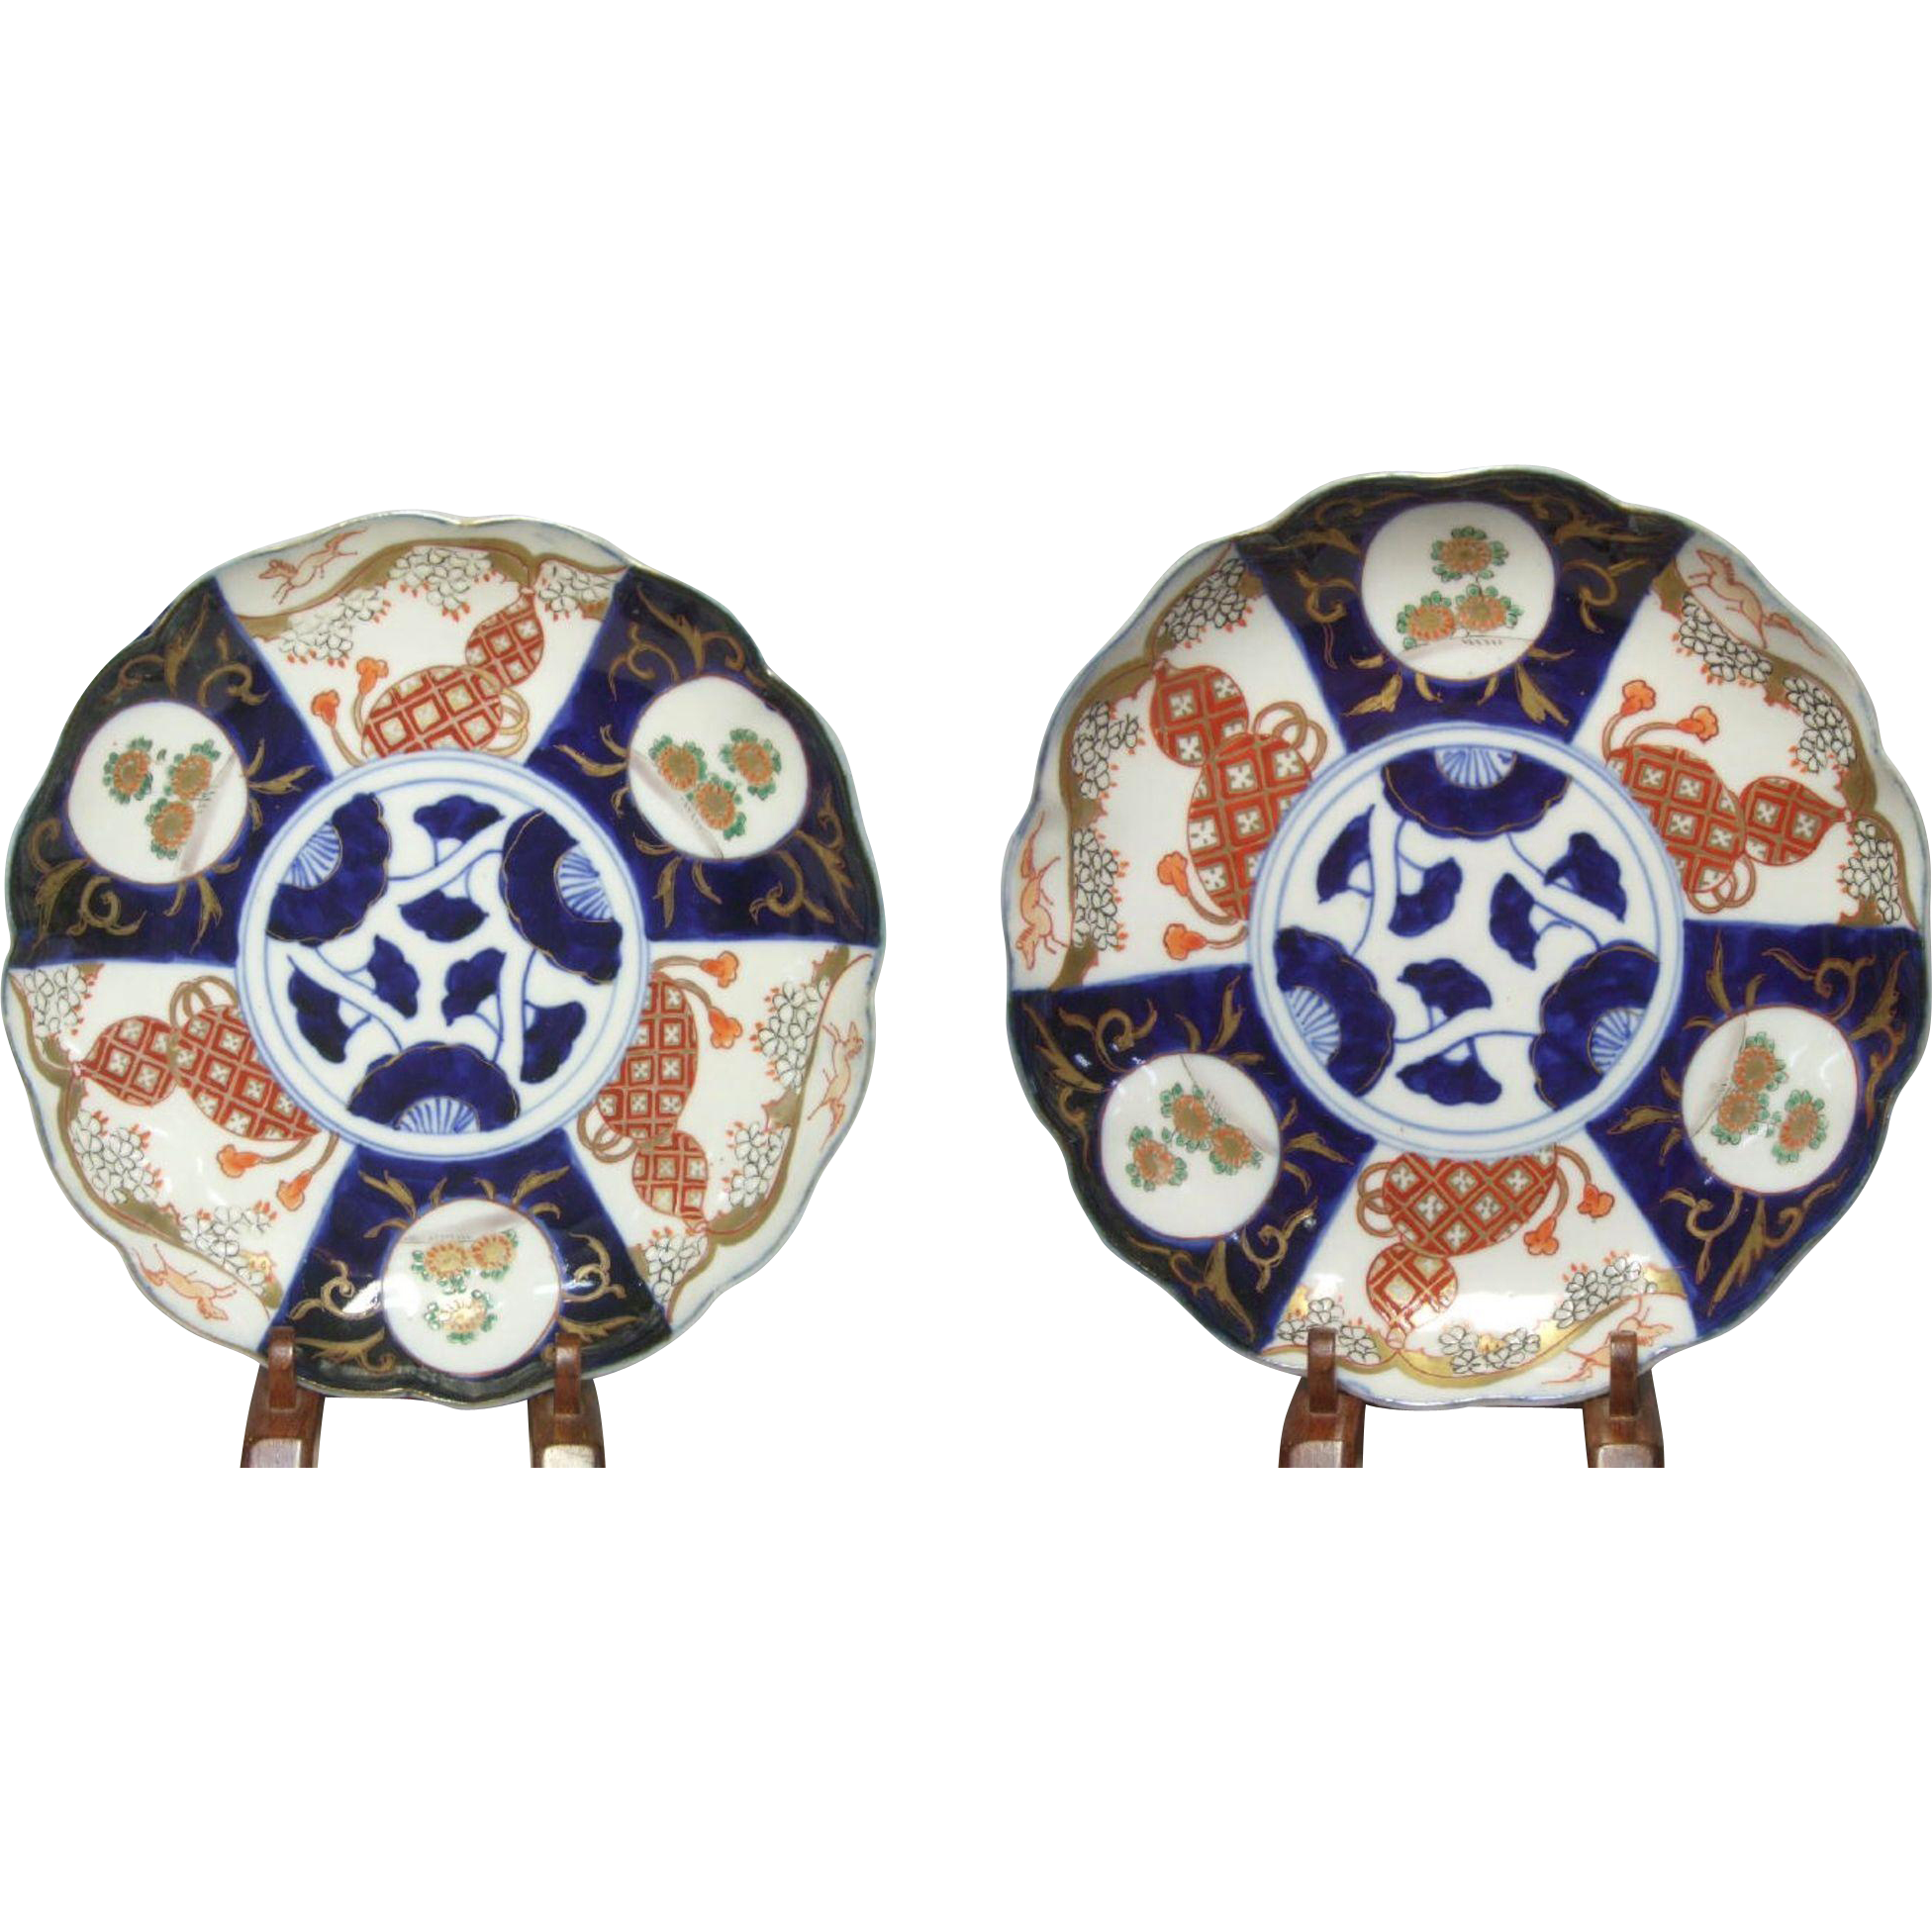 "Pr. Japanese Imari Plates, c.1840's, 8 1/2"" Horse and Gourd Design"